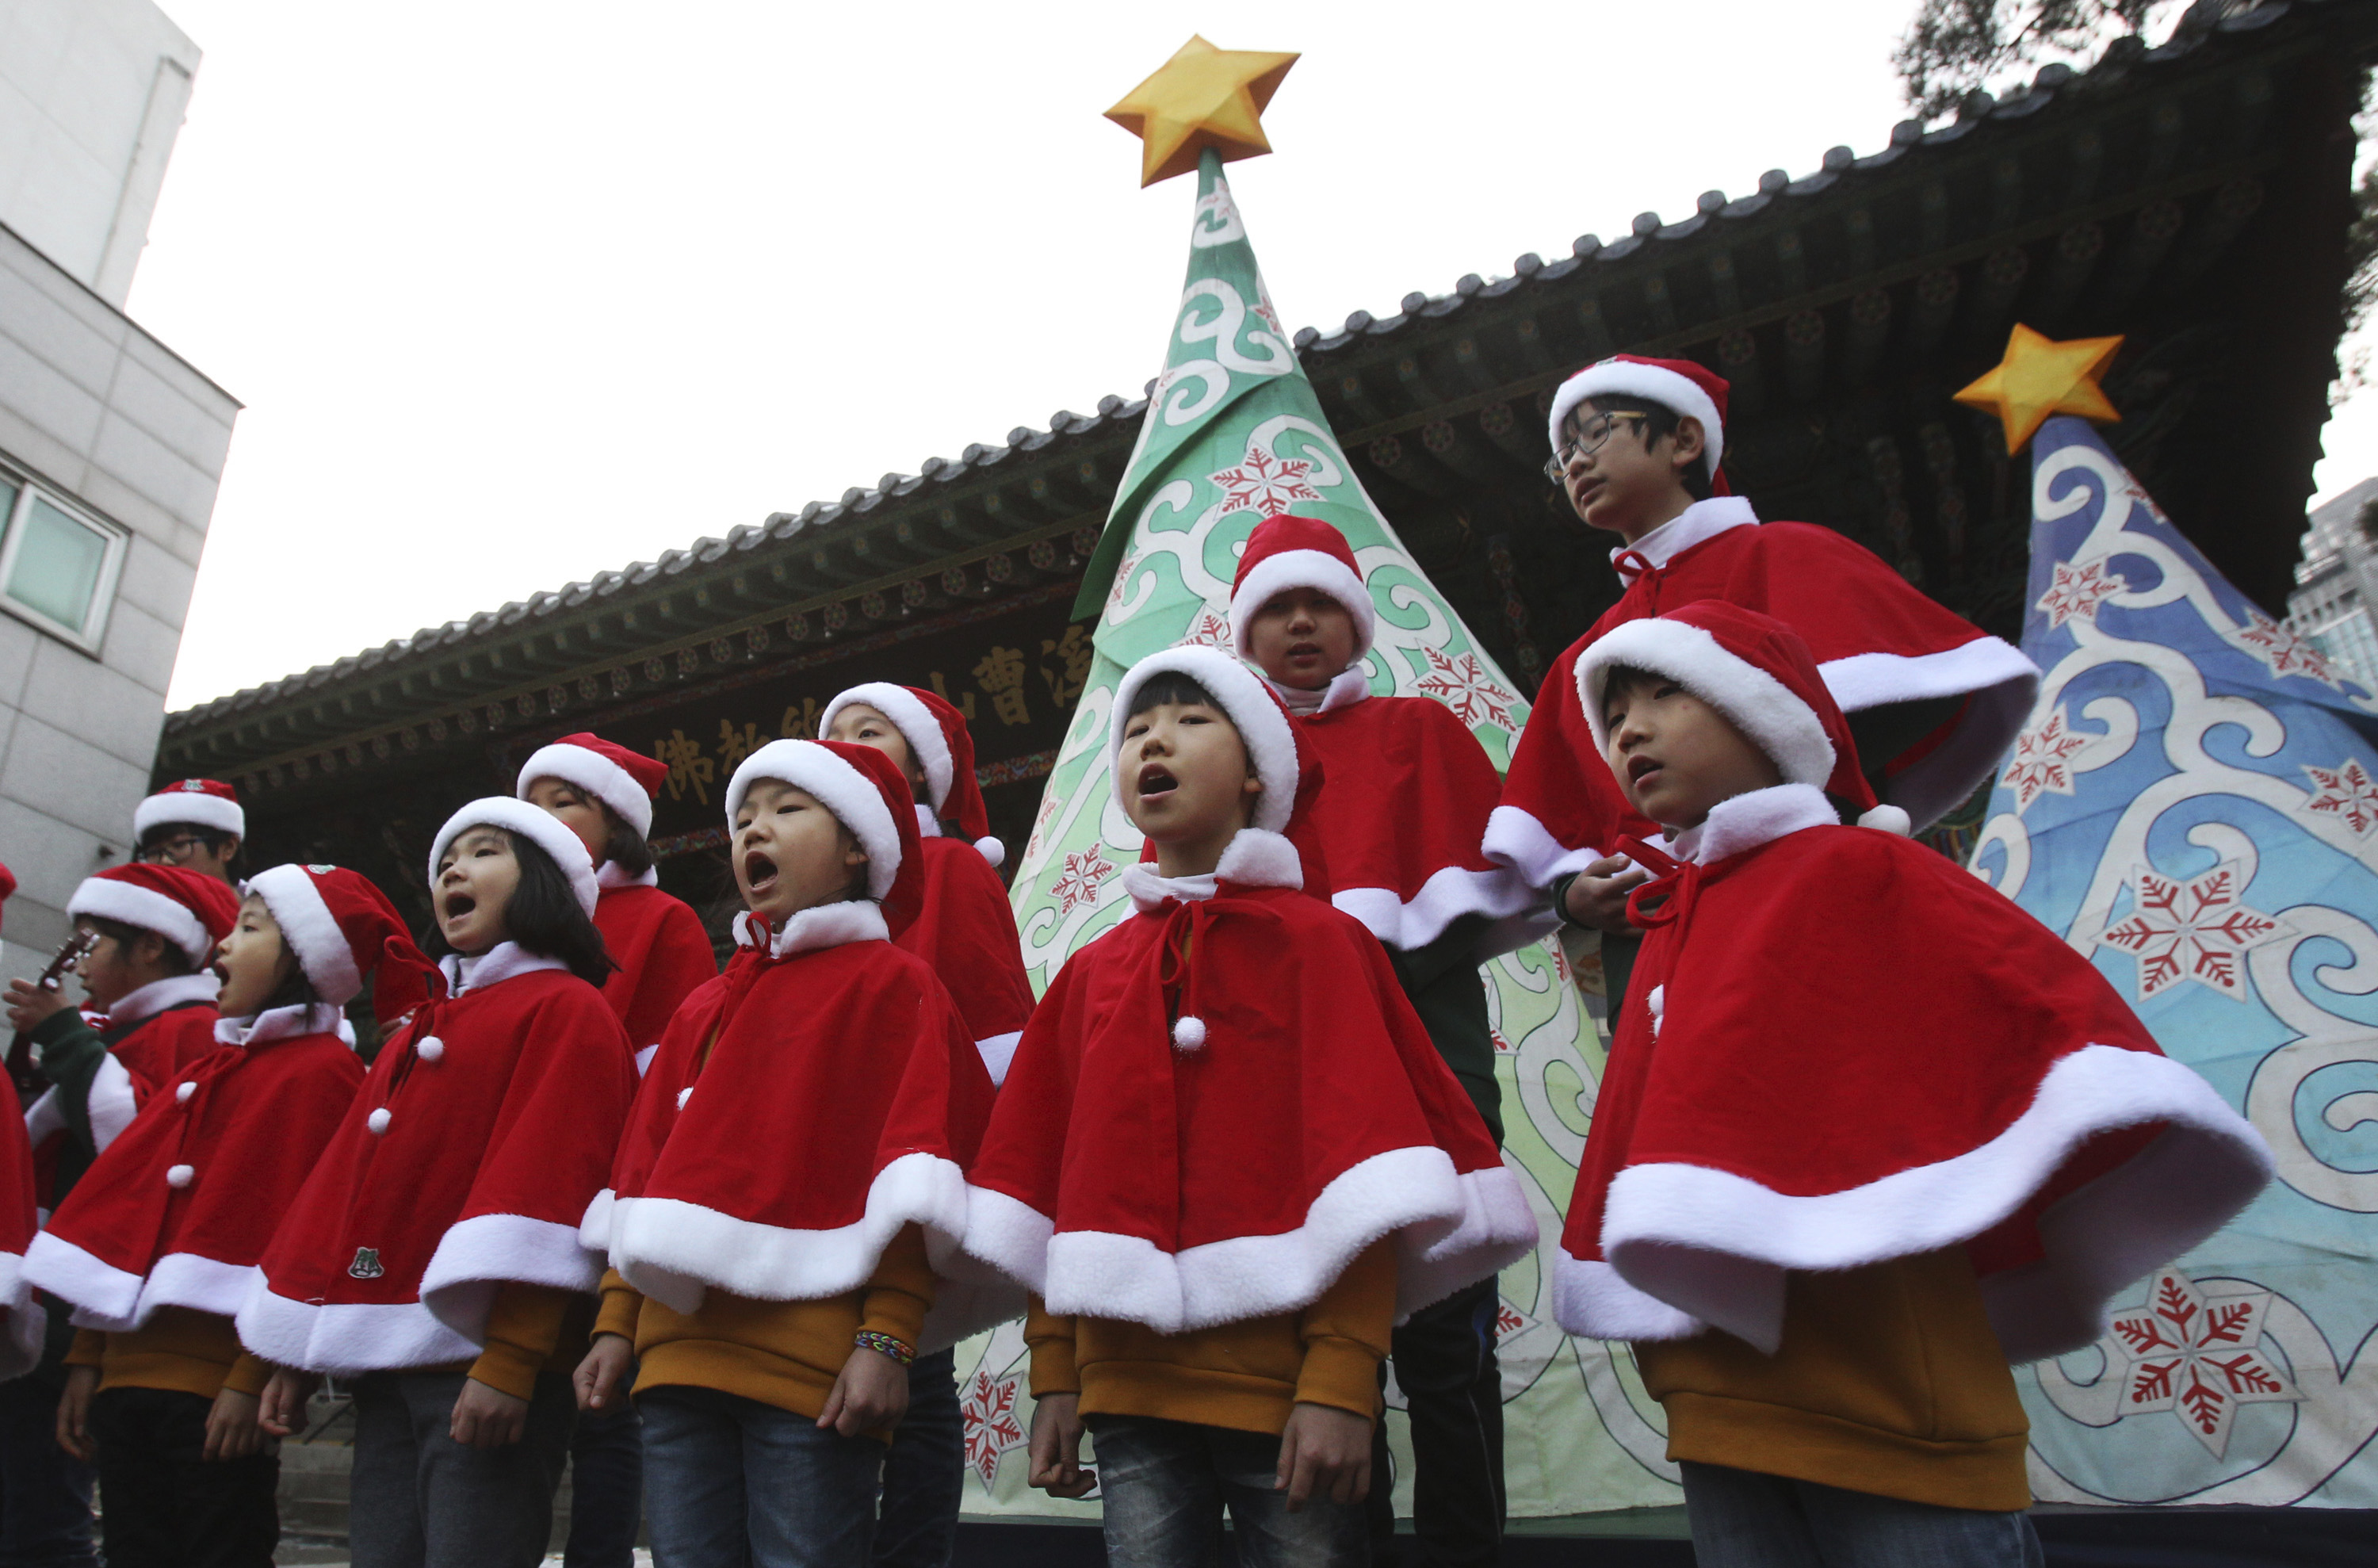 Buddhist children wearing Santa Claus costumes sing Christmas songs in a ceremony to celebrate upcoming Christmas at the Chogye temple in Seoul, South Korea, Wednesday, Dec. 18, 2013. South Korean Buddhists have been celebrating Christmas to show their goodwill toward Christians.(AP Photo/Ahn Young-joon)